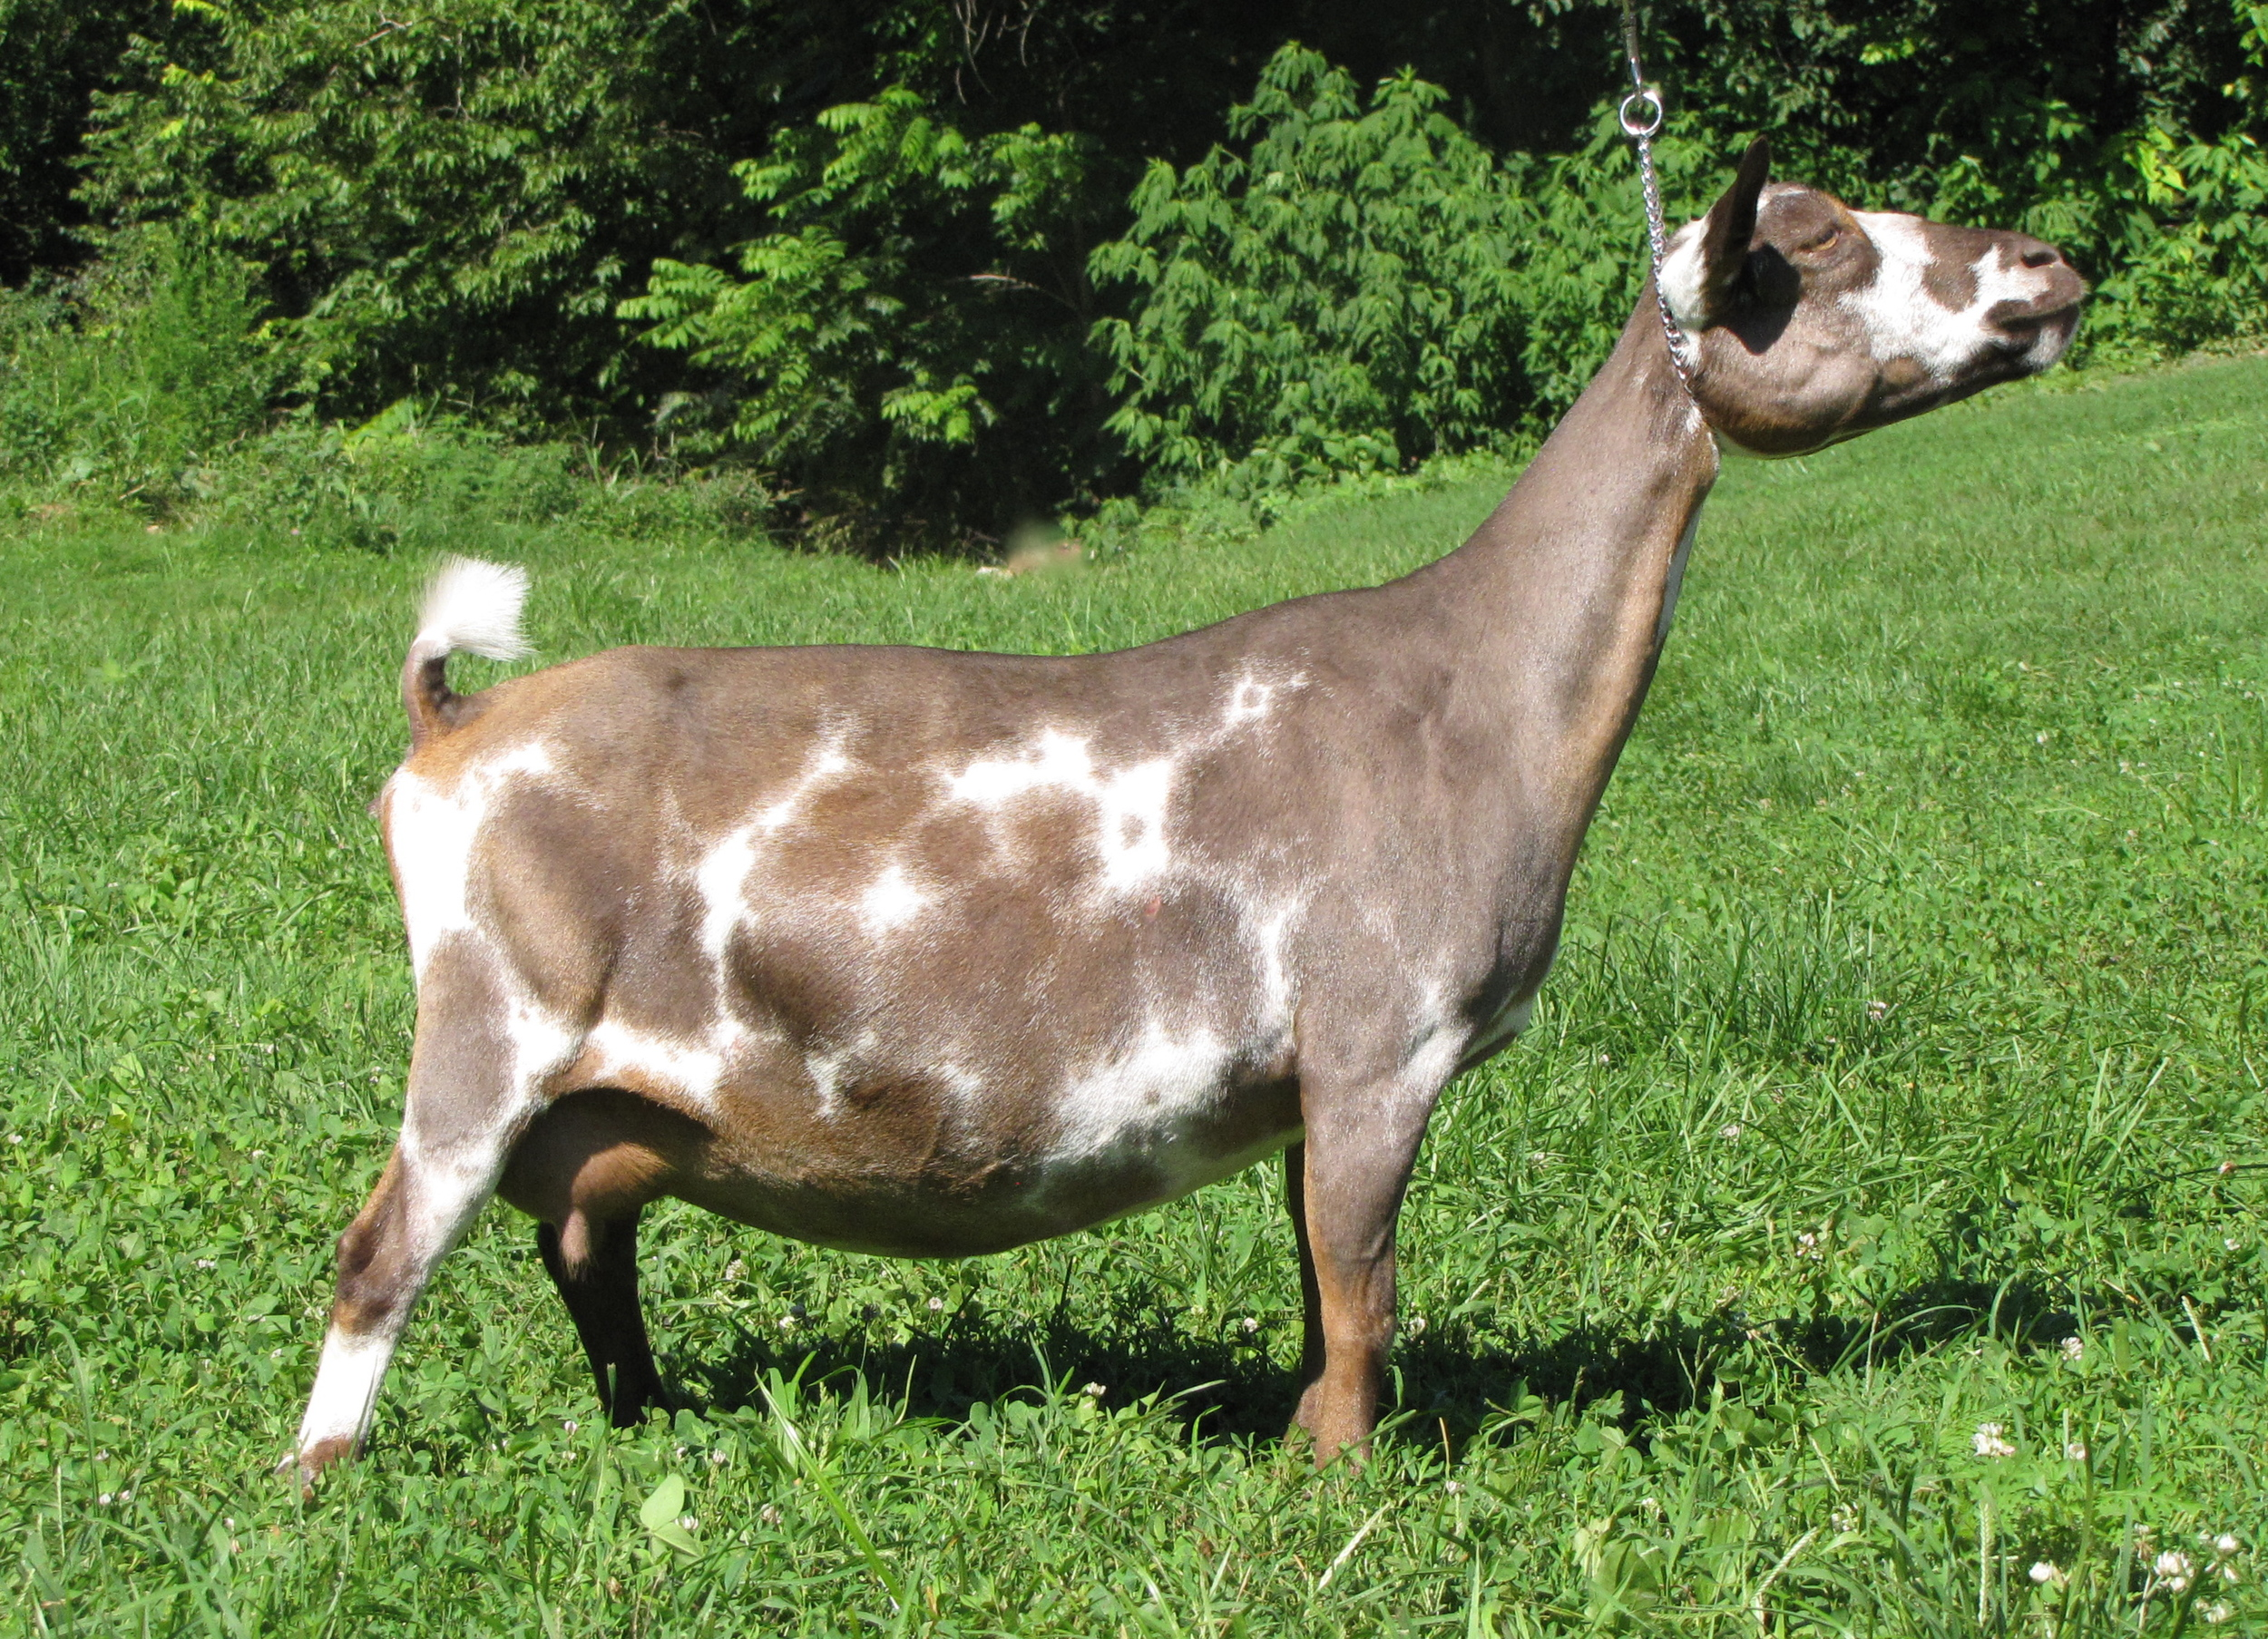 SGCH/ARMCH/PGCH Lost Valley TB Dipp'n Dots 1*M *D VEEE90  (8/18/06-- deceased )       (photo'd as dry doe)   Sire :ARMCH Lost Valley Tae-Bo ++*S ++B E91.4 2009 & 2010 AGS Nat'l Champion Buck Dam :MCH Pecan Hollow GL Faith   9x GCH, 9x BOB (Champion Challenge)1x BIS, 2x Best Udder     2014 ANDDA Total Performer     2014 AGS National Top 10 1Day Milk Awards (3rd place)  ANDDA Sue Rucker Silver Award (2014)    Dam of the 2010 NDGA National Reserve JrGCH & 3 AGS Natl Top 10 daughters, 2 milking 1000#+